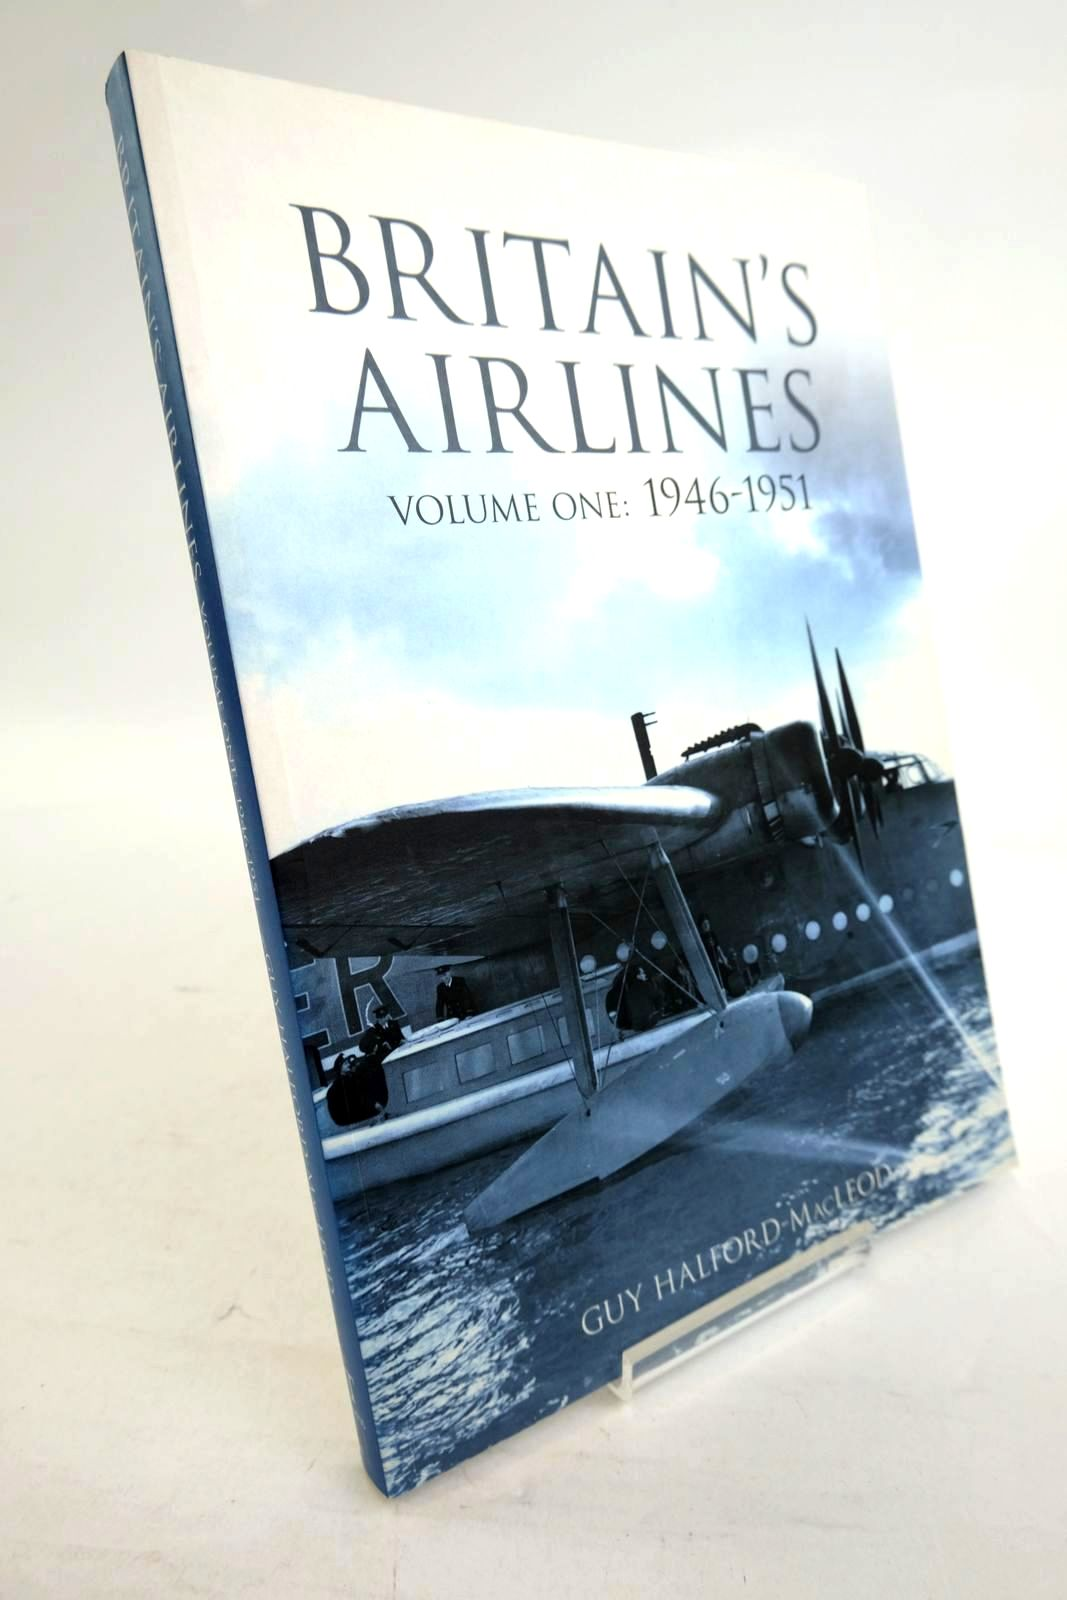 Photo of BRITAIN'S AIRLINES VOLUME ONE: 1946-1951 written by Halford-Macleod, Guy published by Tempus Publishing Ltd (STOCK CODE: 1320276)  for sale by Stella & Rose's Books